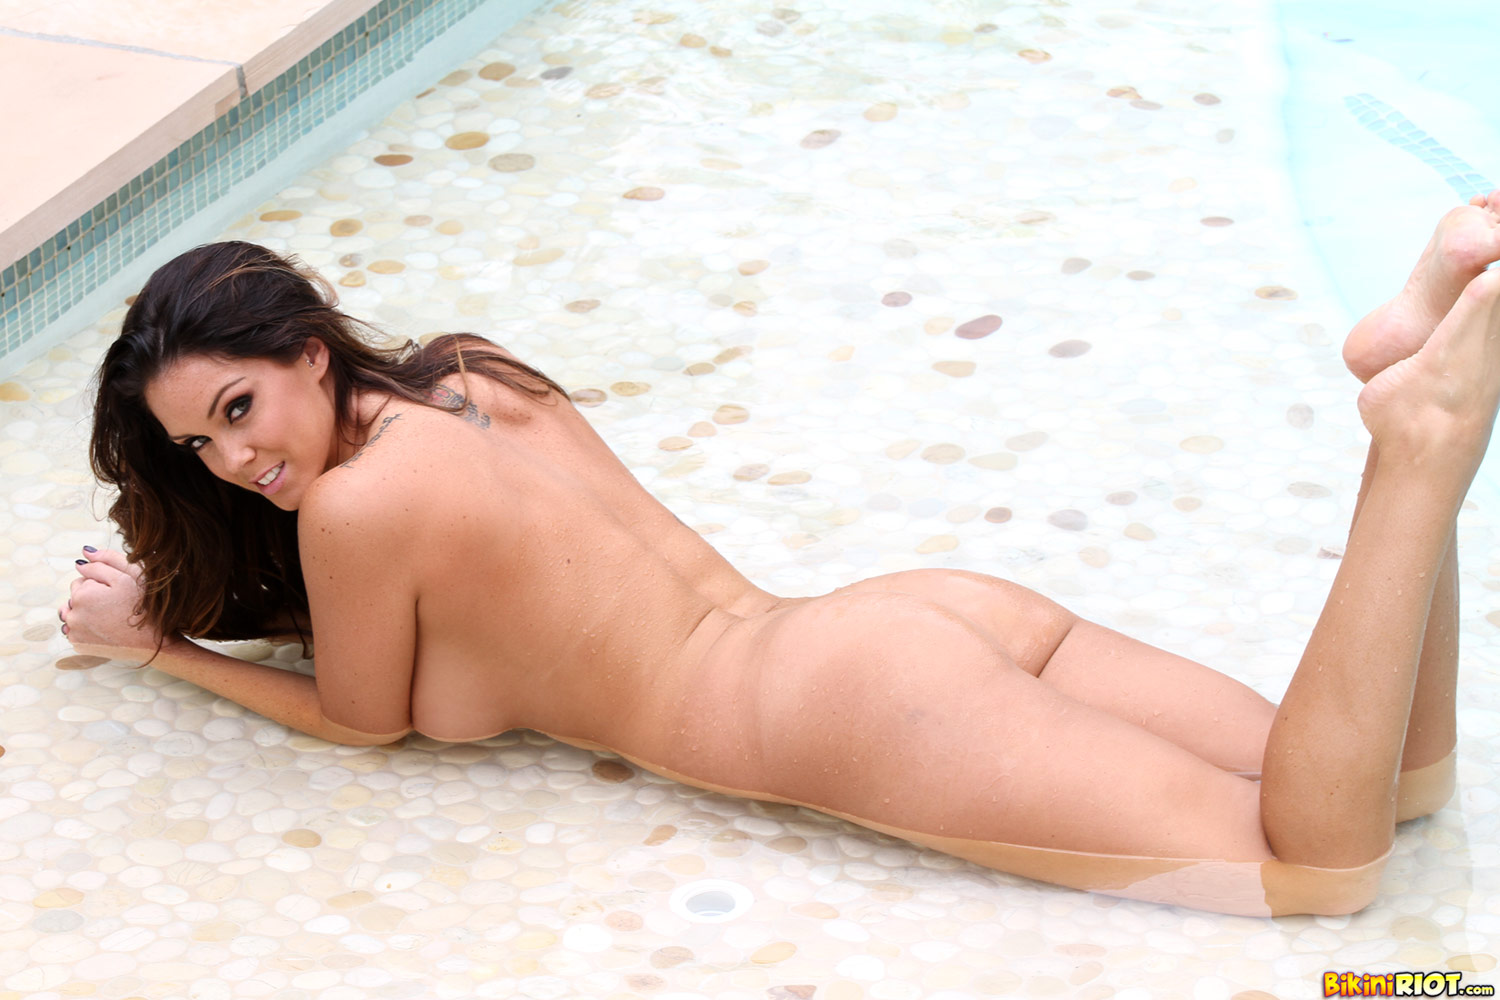 Alison Tyler Porn Pics alison tyler strips in the pool - sexy gallery full photo